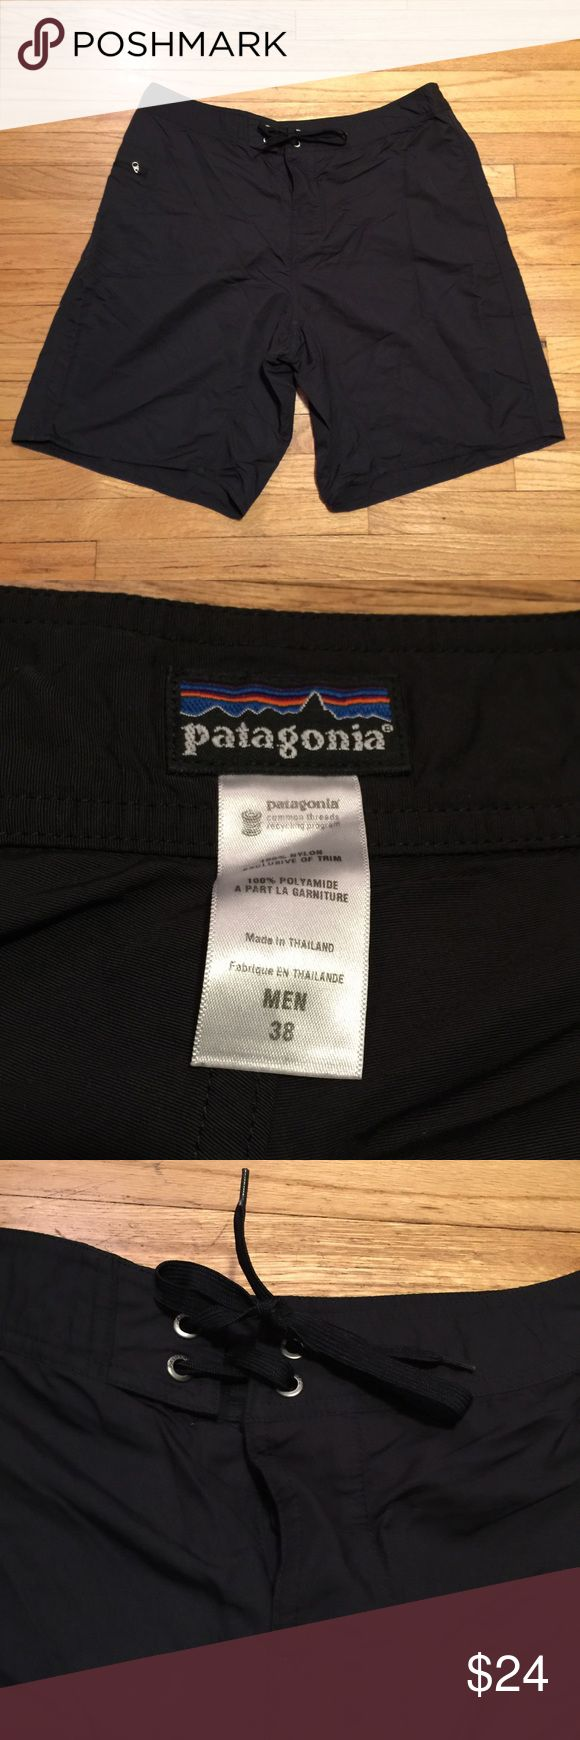 Patagonia men's black board shorts - sz 38 Patagonia men's black board shorts - sz 38. Waist - 18 inches. Rise - 12 inches. Length - 21.5 inches. Excellent condition. Patagonia Shorts